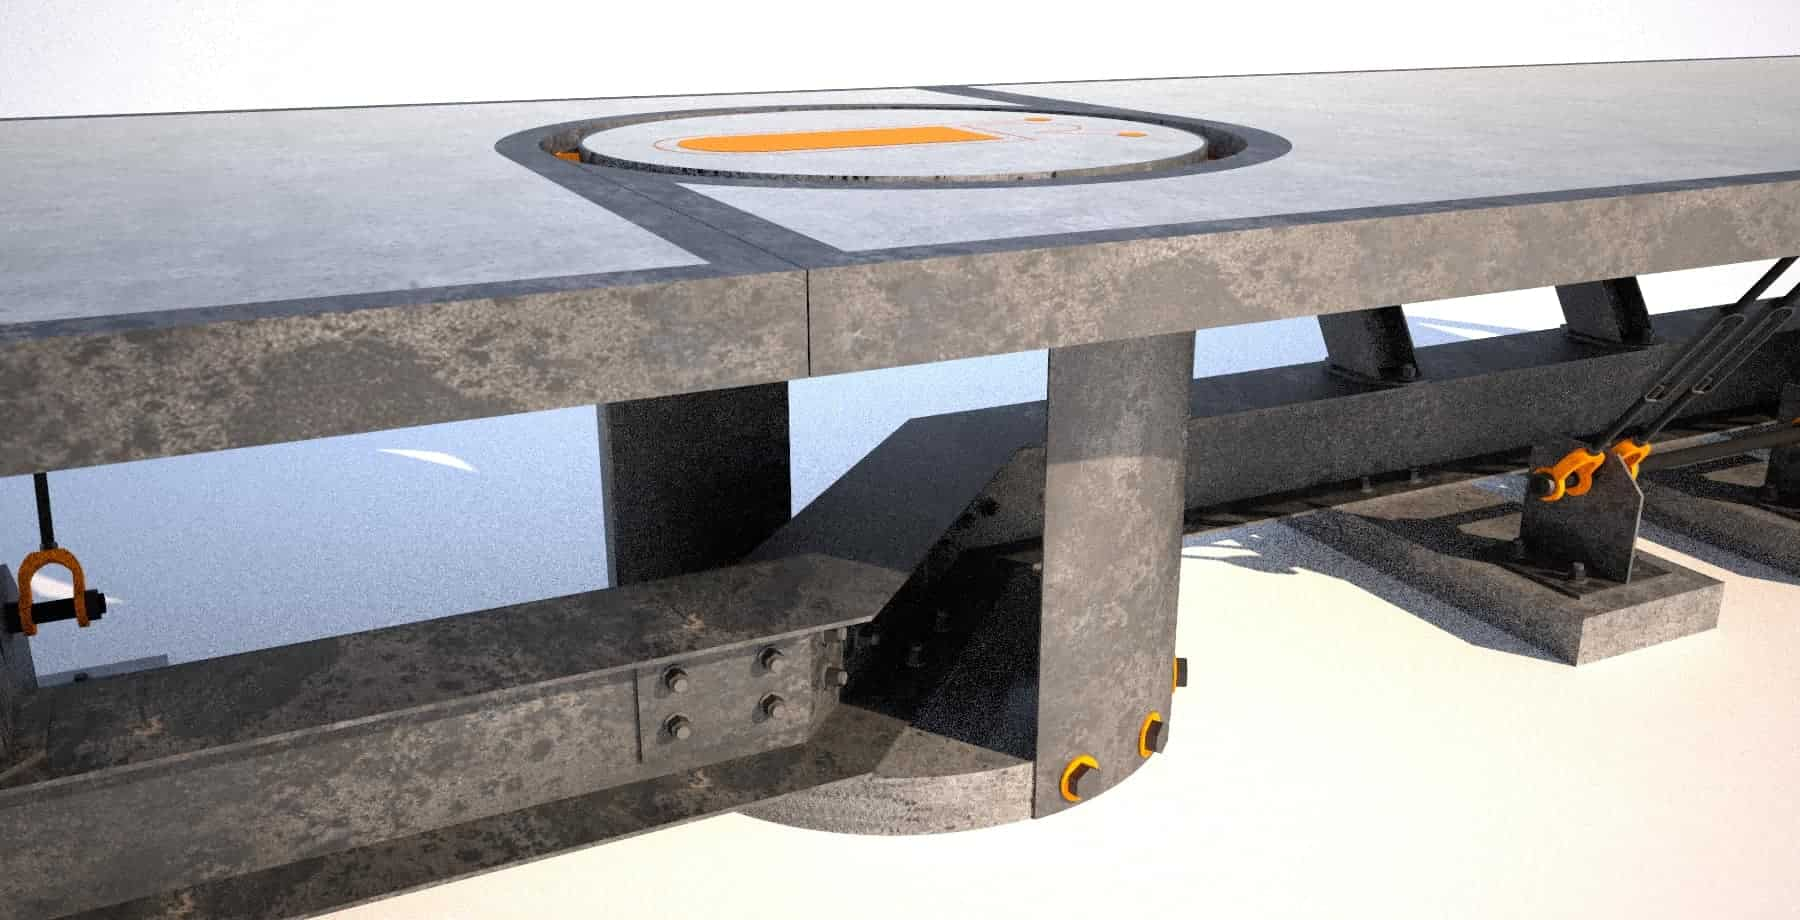 8 Steel and concrete conference room table, base center view, Designs by Rudy